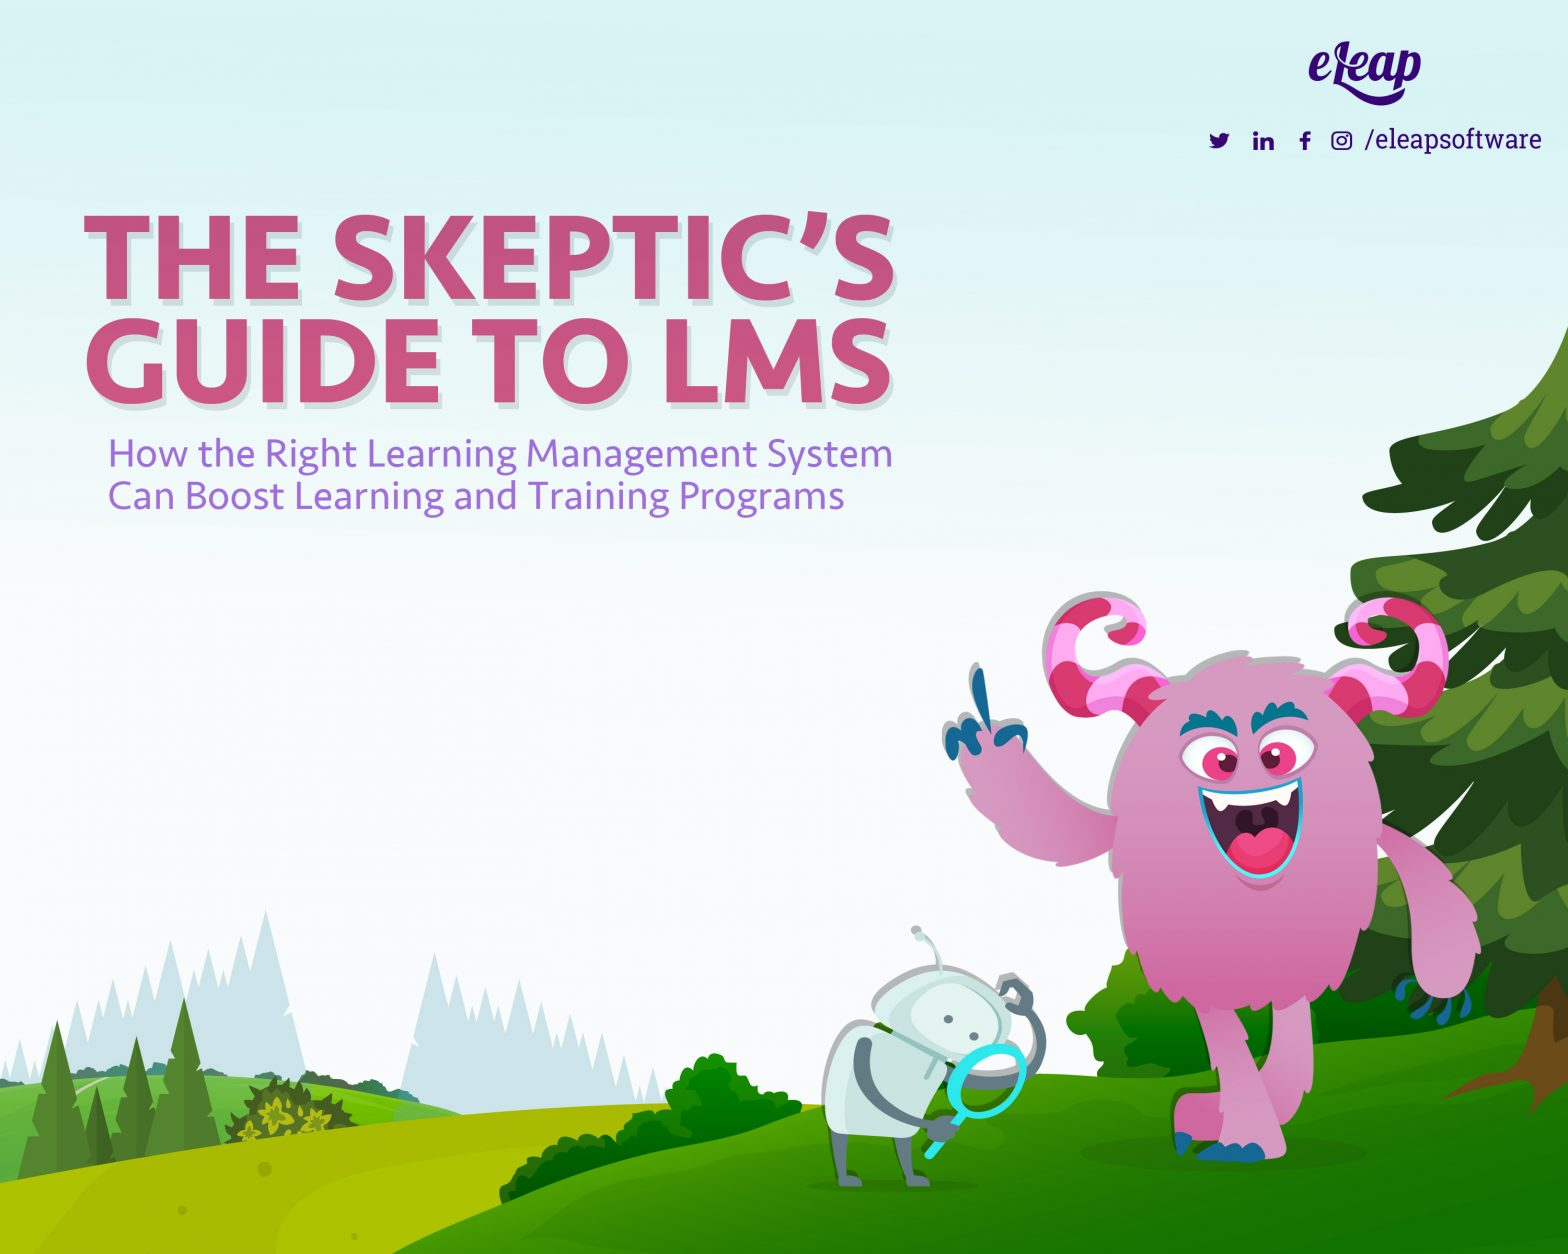 Are you an LMS skeptic?